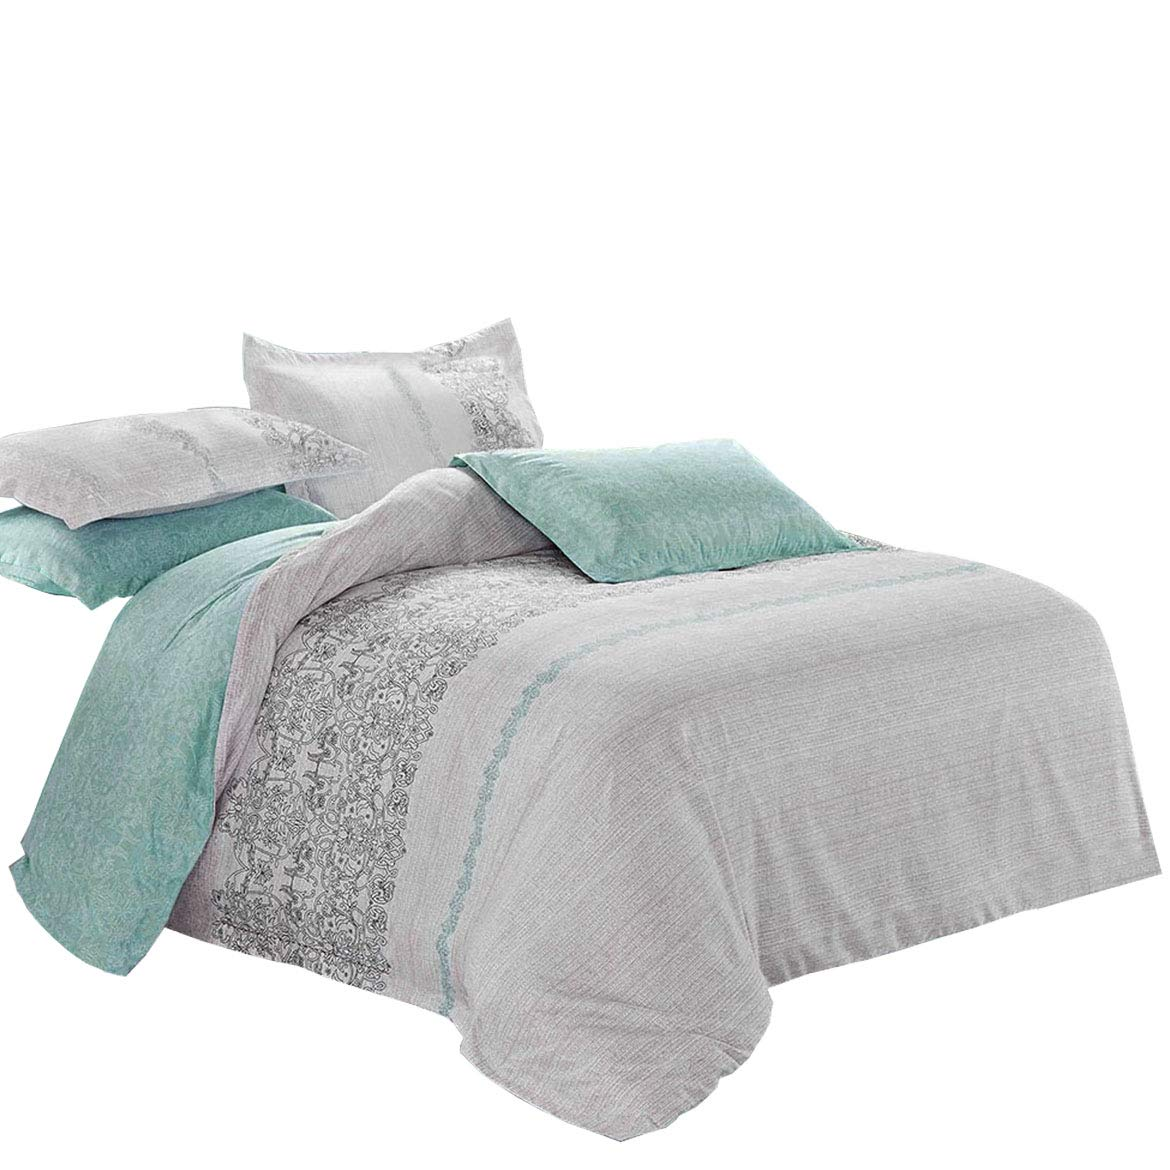 Wake In Cloud - Gray Teal Comforter Set, Reversible with Grey and Turquoise Pattern Printed, Soft Microfiber Bedding (3pcs, Queen Size) by Wake In Cloud (Image #1)